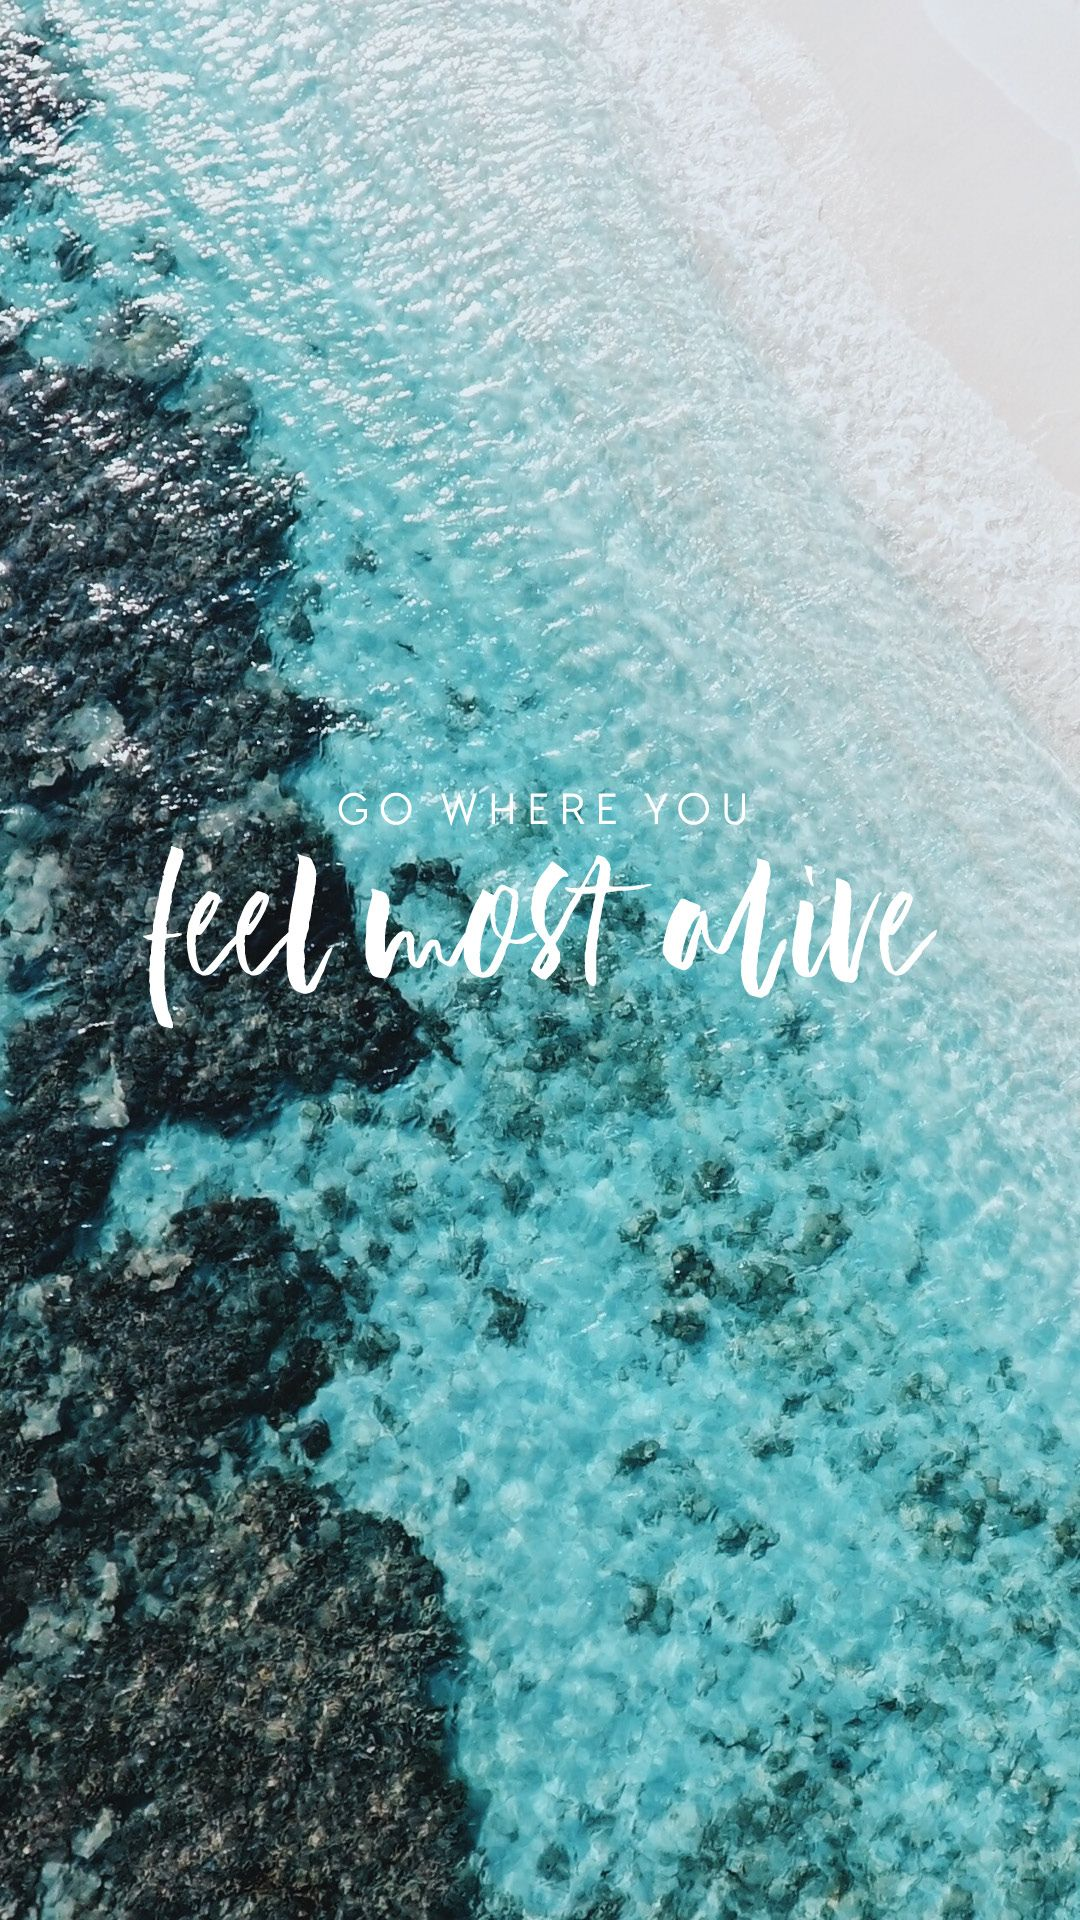 Summer Free Wallpapers Discover New Designs Every